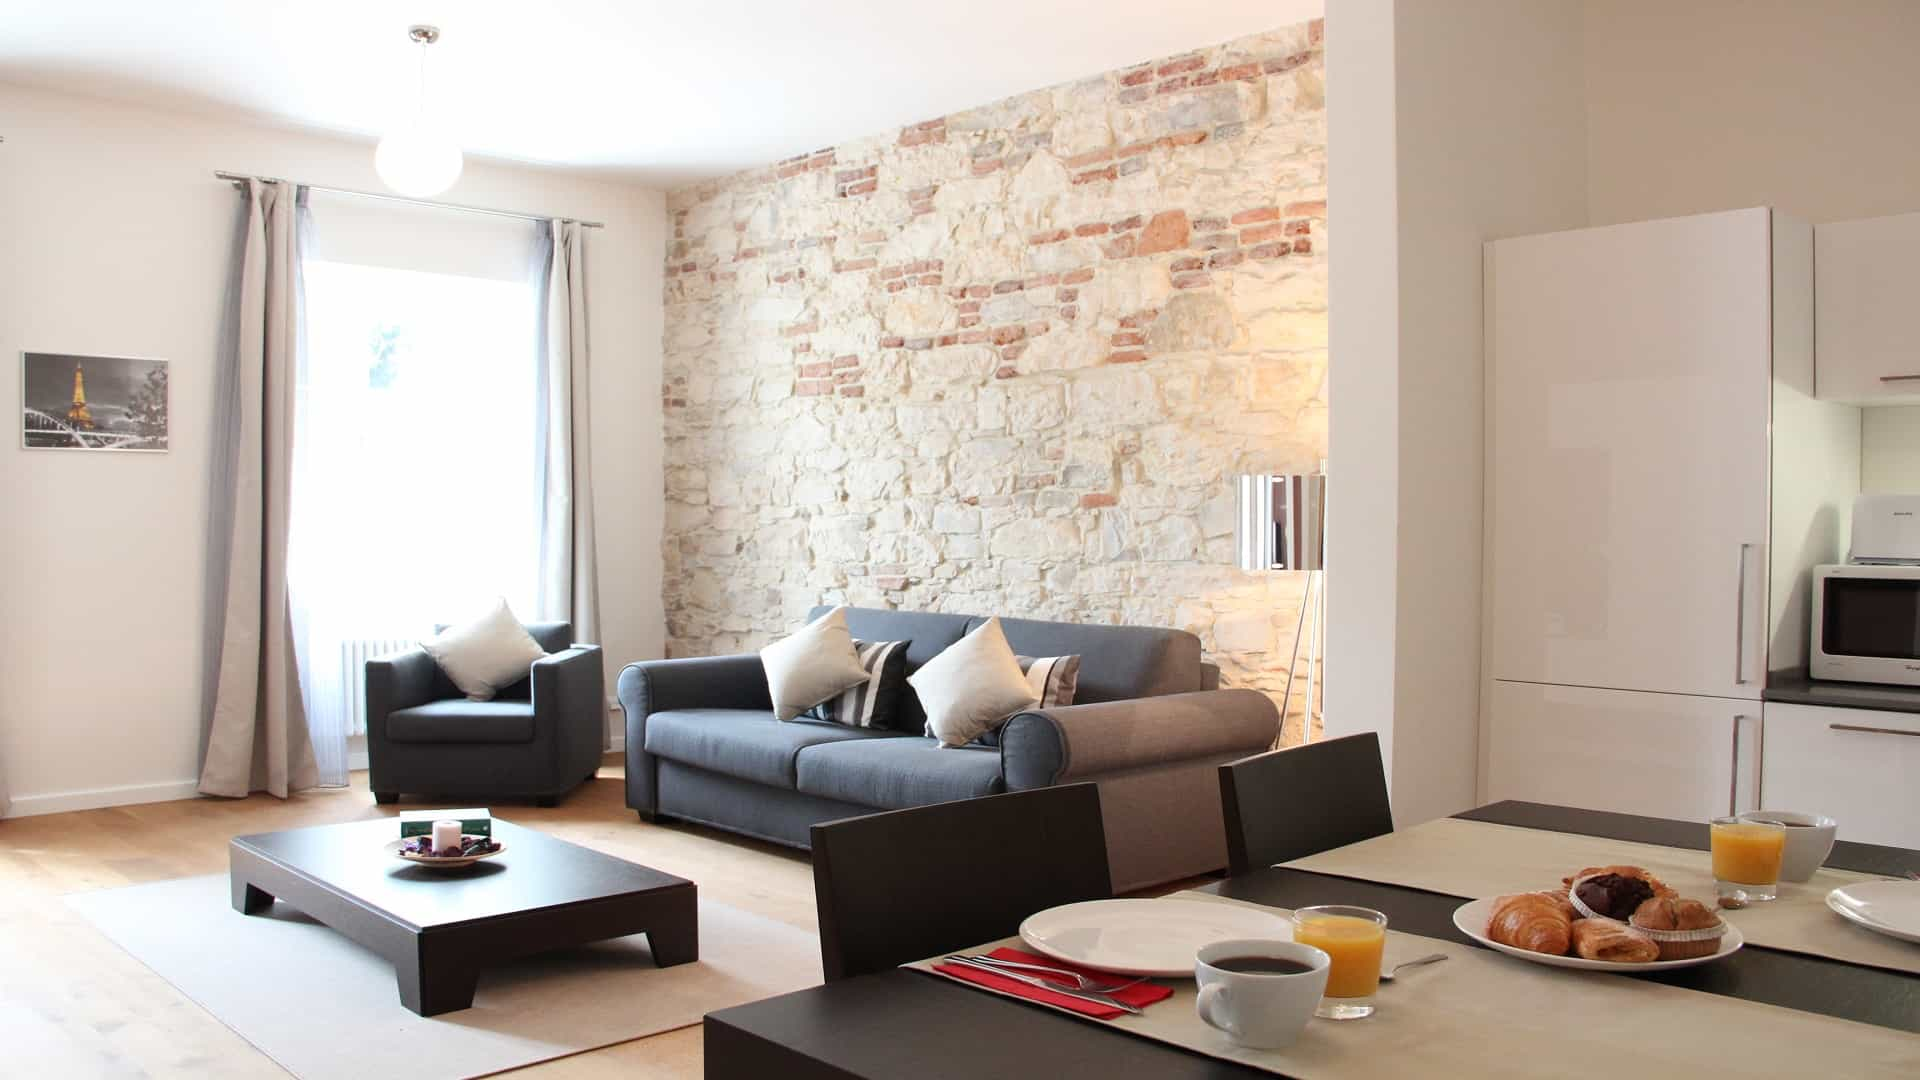 MH Apartments<br> Different style, same essence